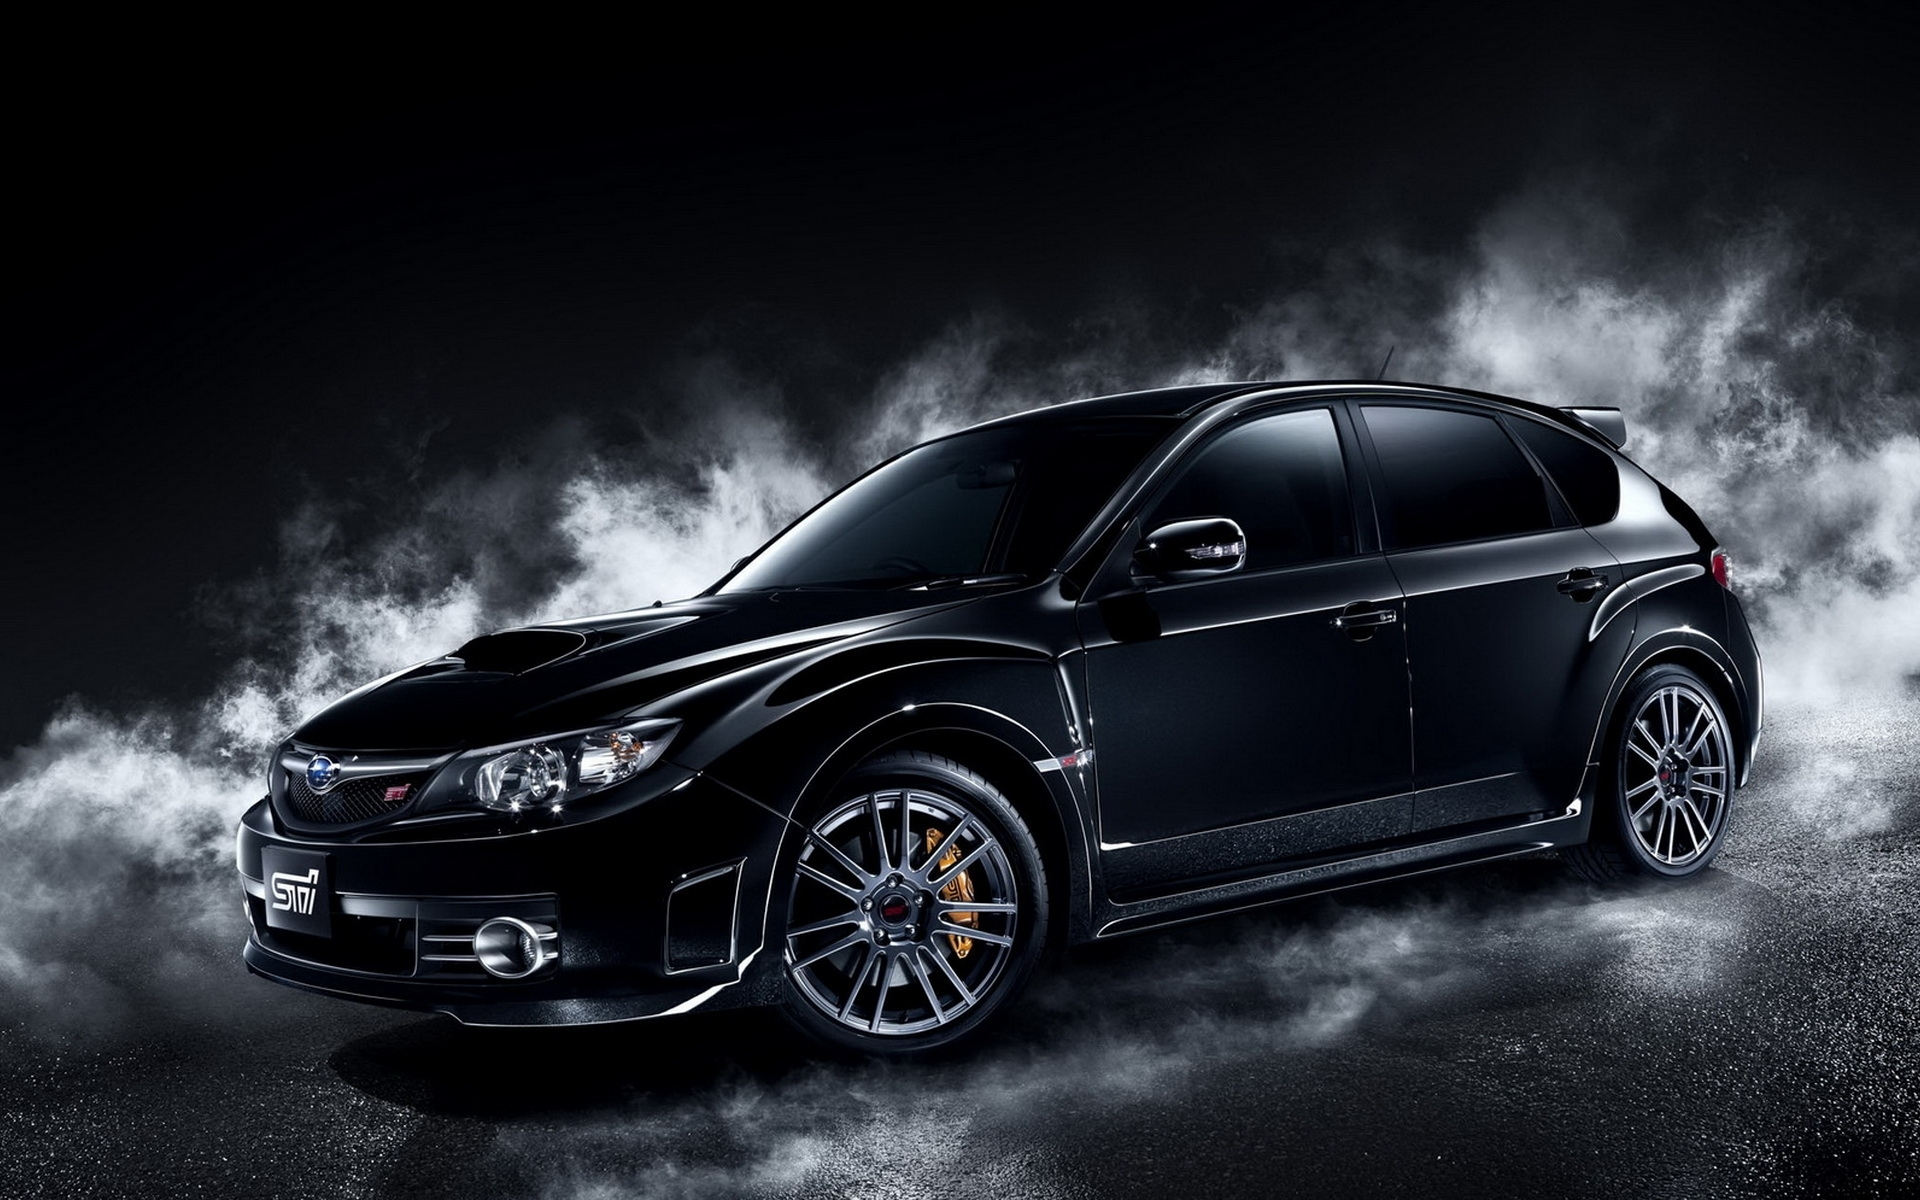 41507 download wallpaper Transport, Auto, Subaru screensavers and pictures for free